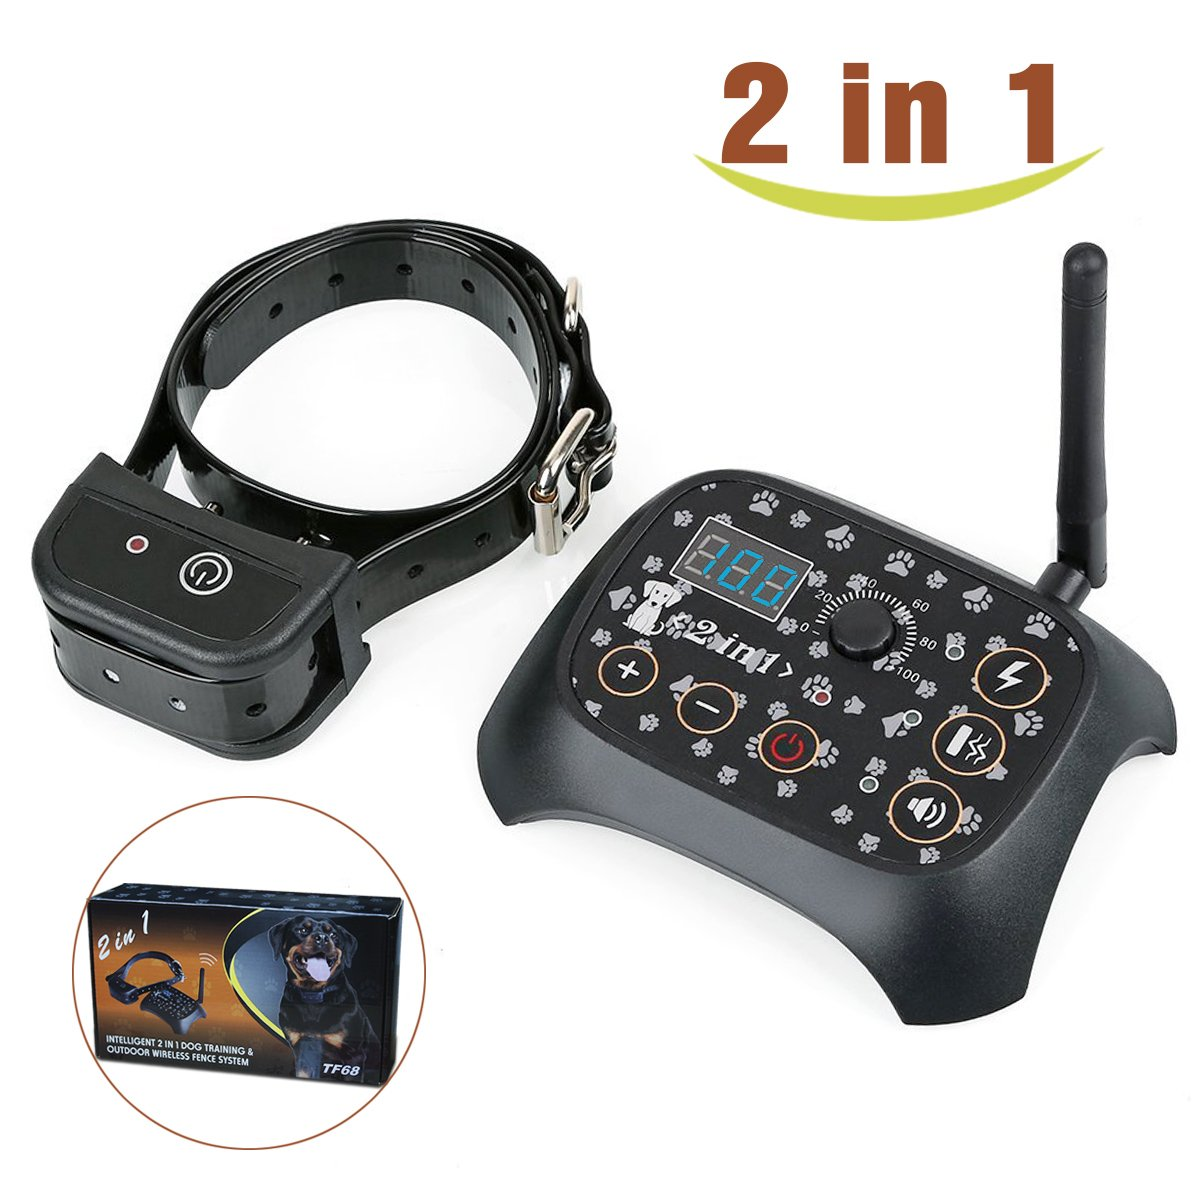 Stonepack 2-in-1 Wireless Dog Fence System with Dog Training Collar, Invisible Pet Fence System Kit Static Shock & Vibration & Tone for Small to Large Dogs